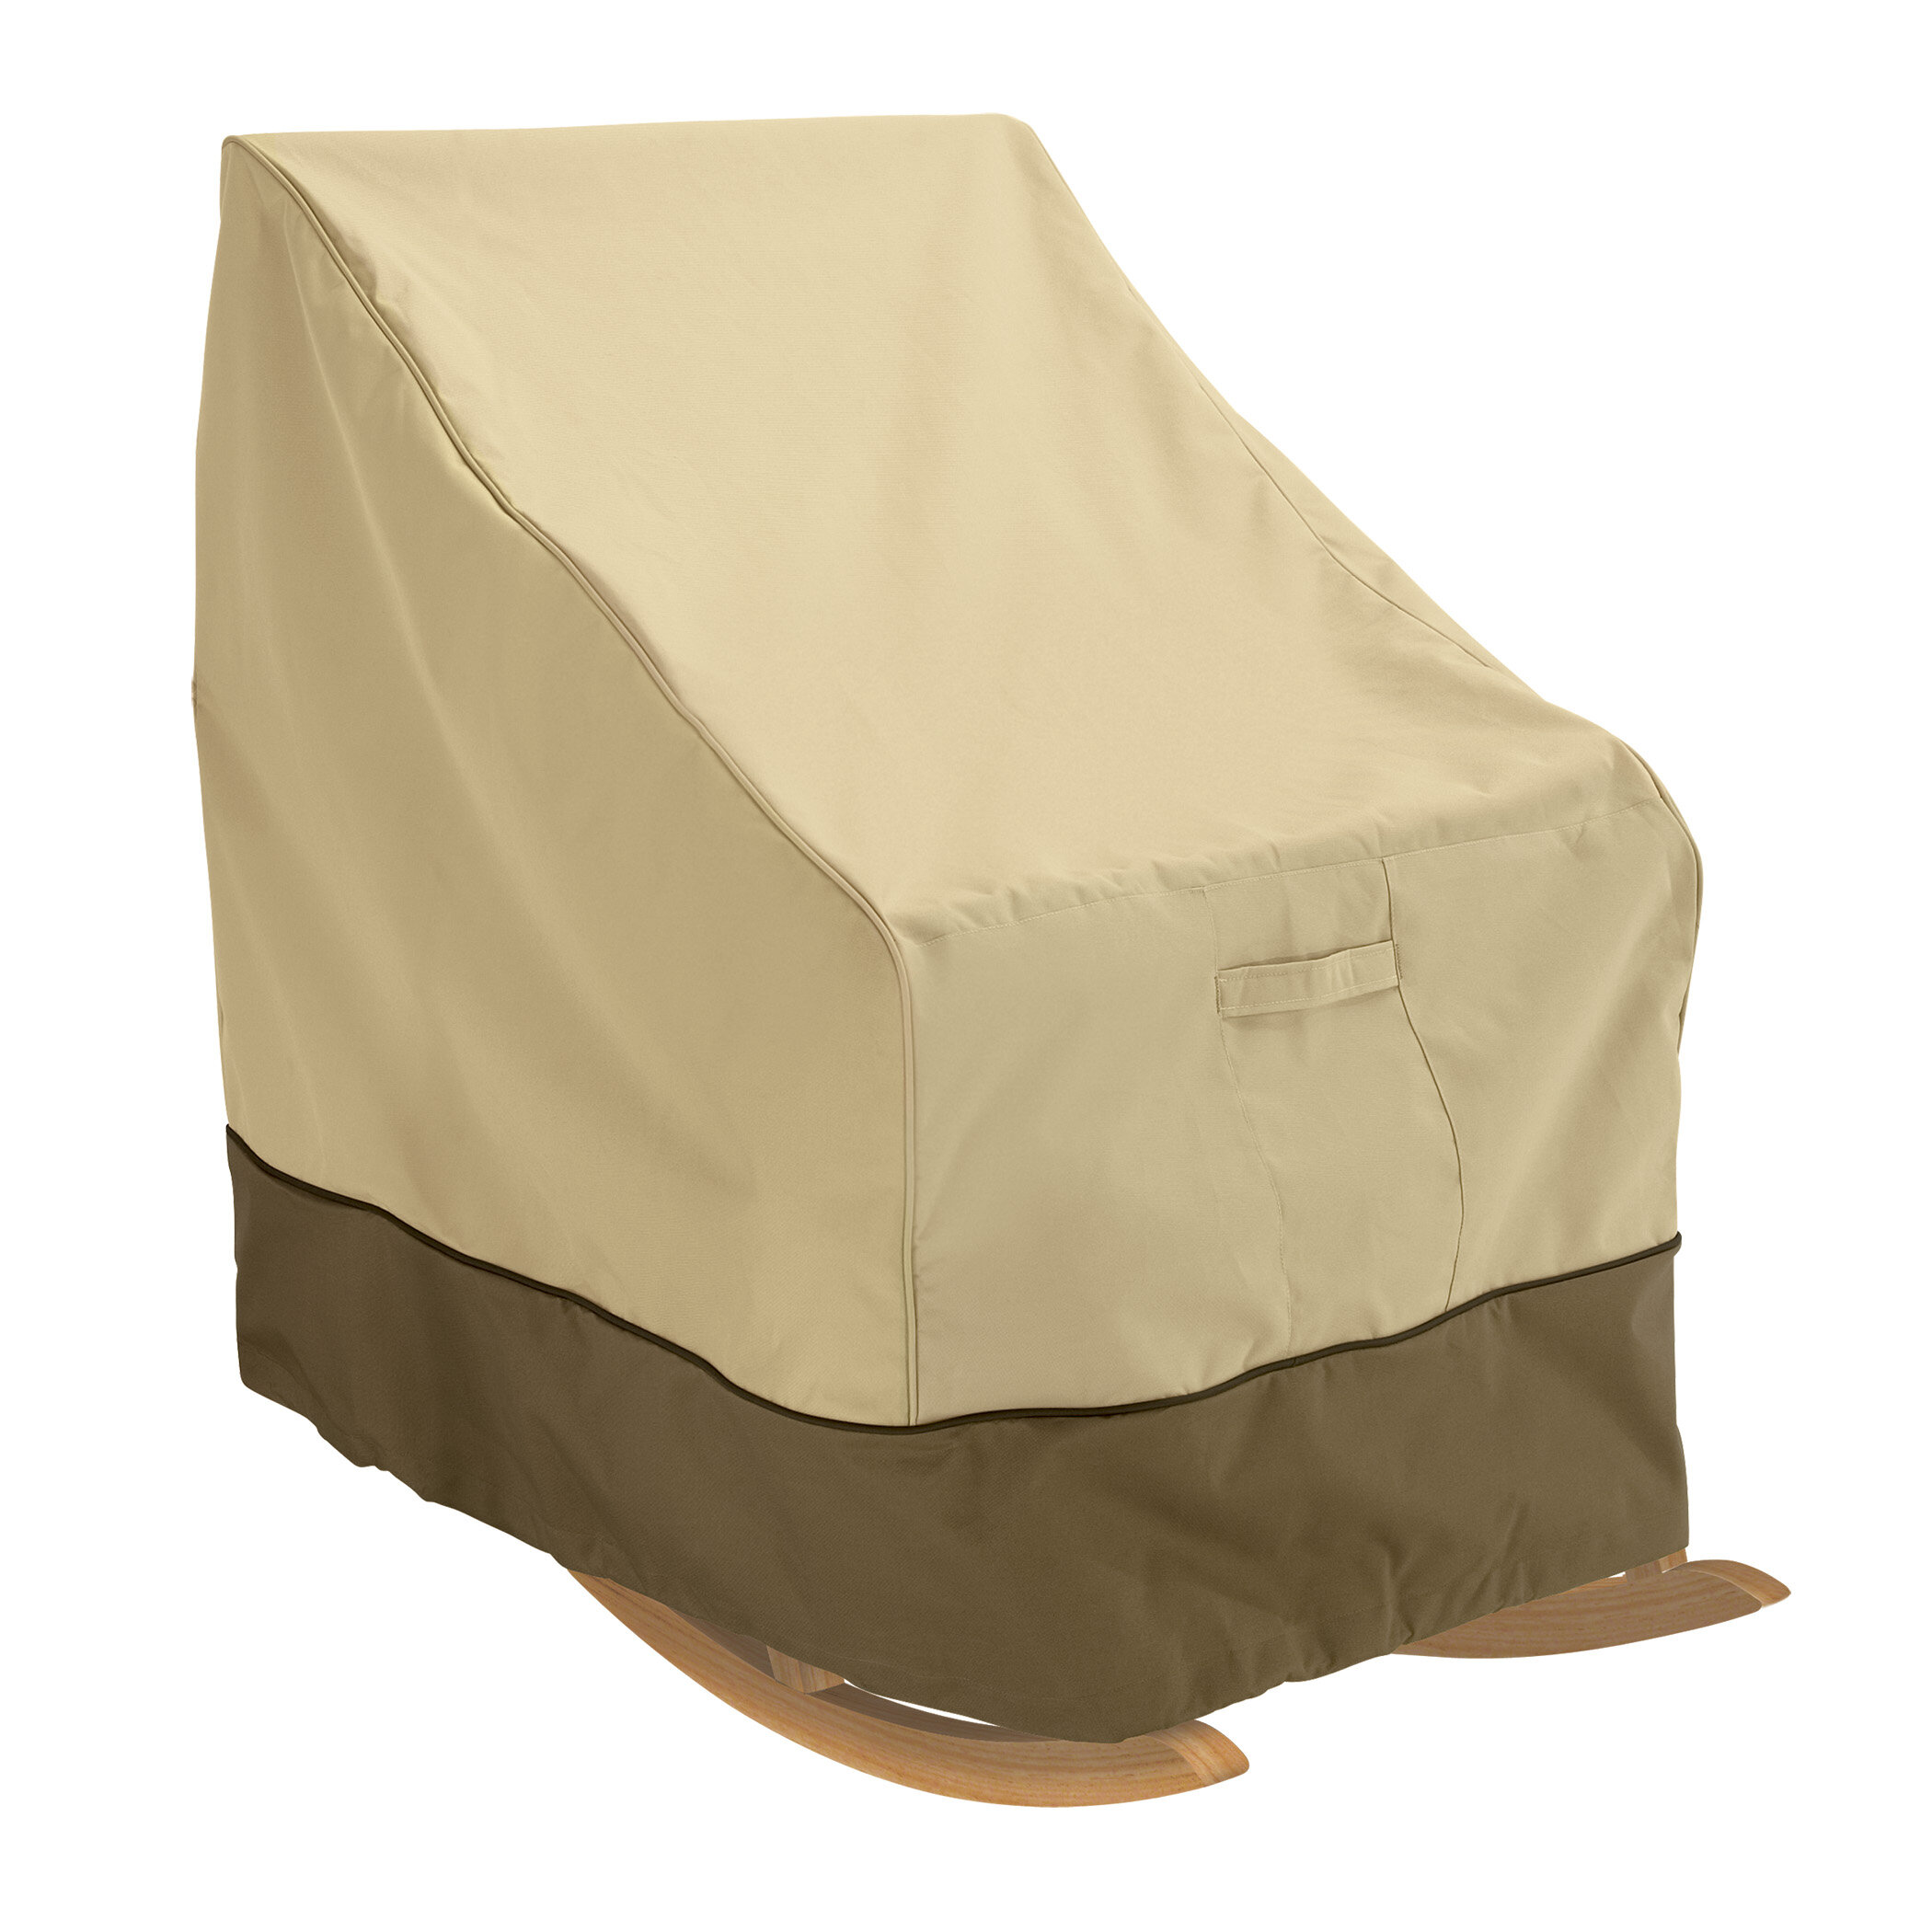 Donahue Water Resistant Patio Chair Cover With 7 Years Reviews Allmodern